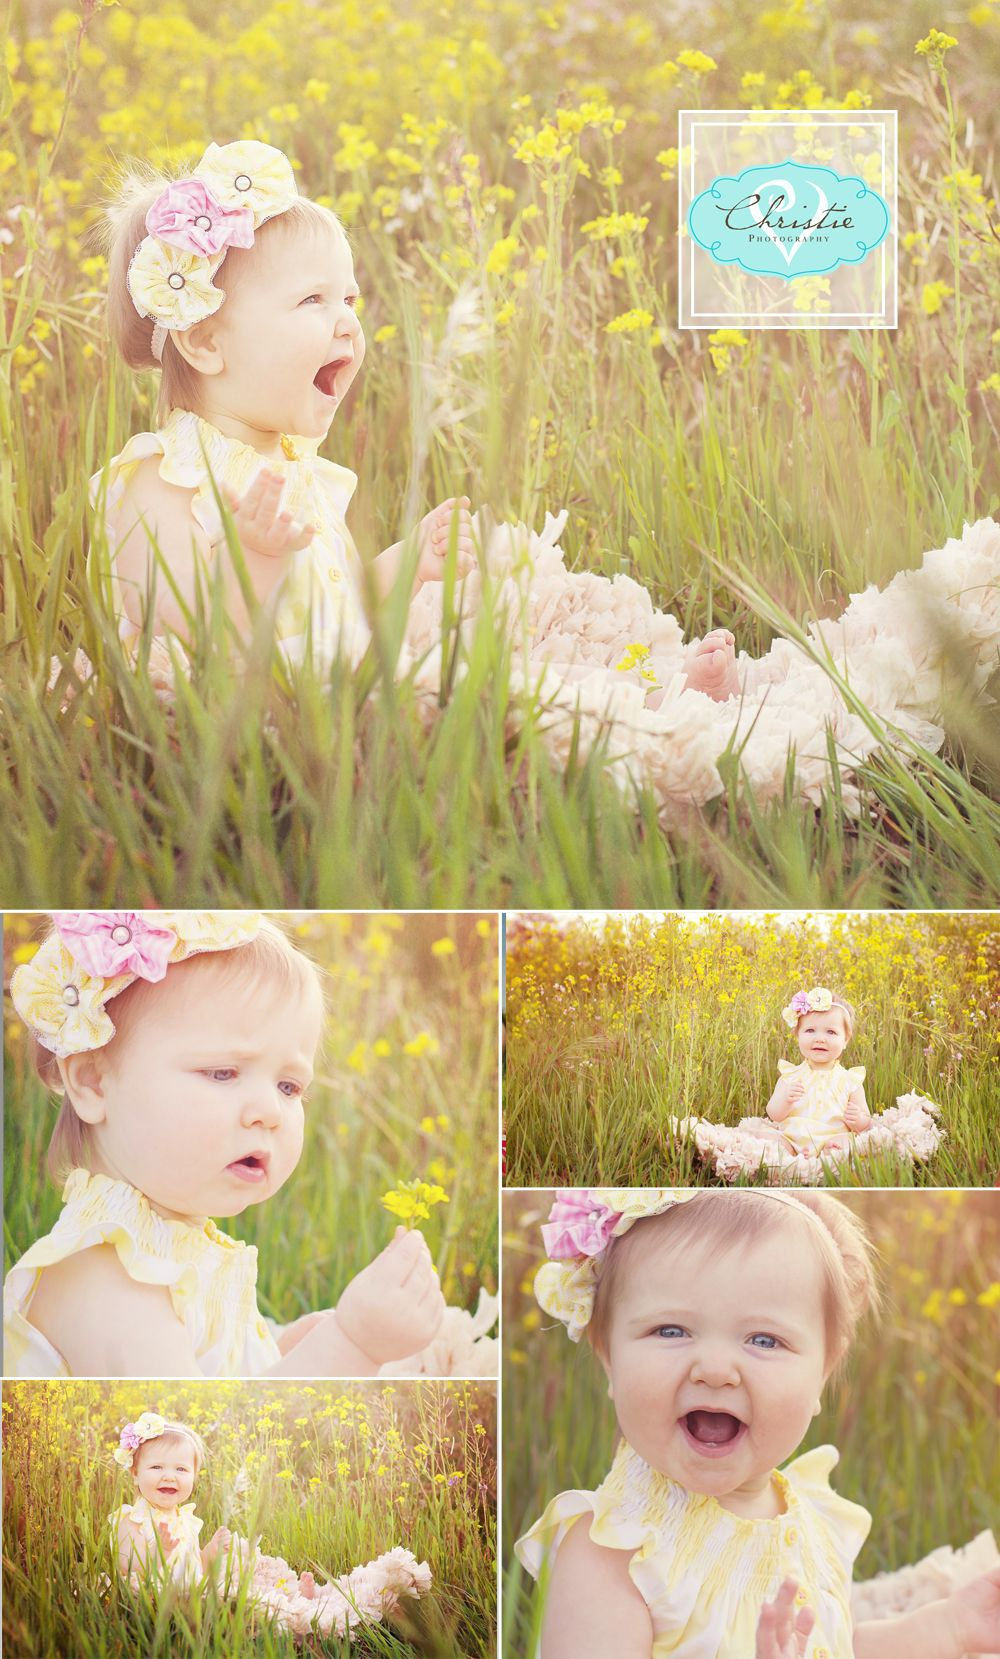 Girl First Birthday Outfit Pinterest: Wildflower Girl First Birthday Photo Shoot Christie-v.com